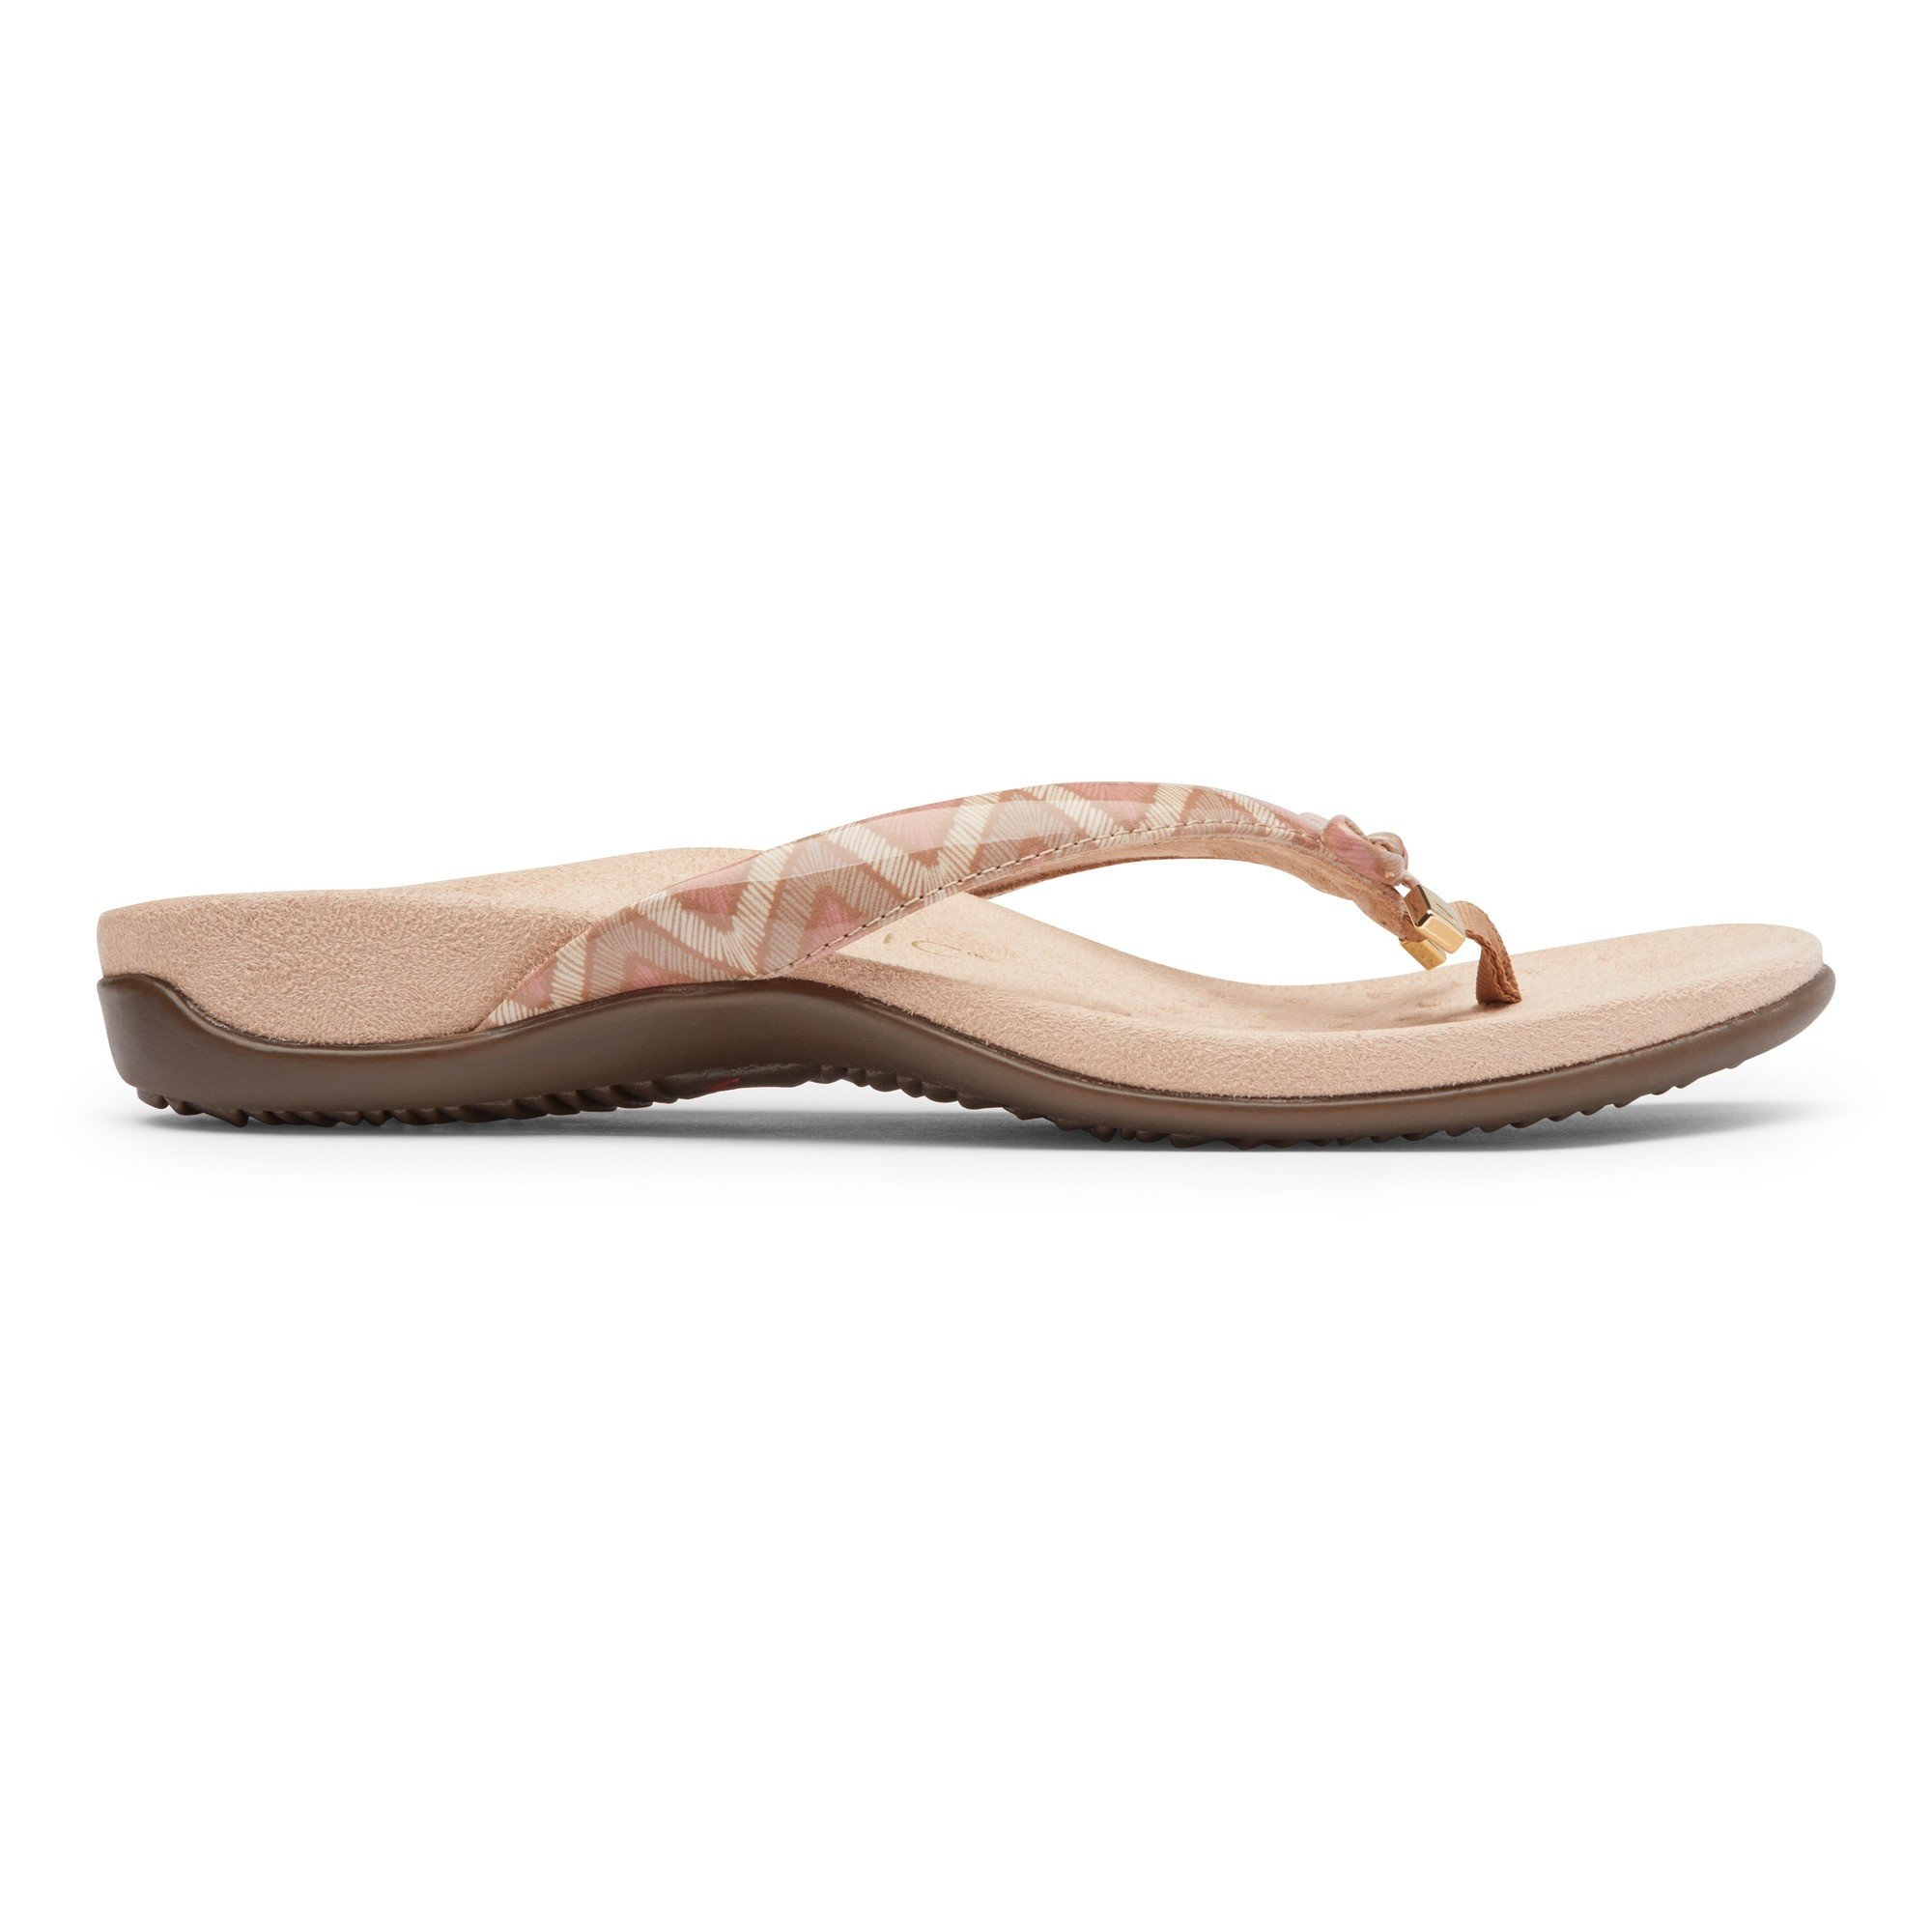 Vionic Bella Toe Post Sandal - Women's